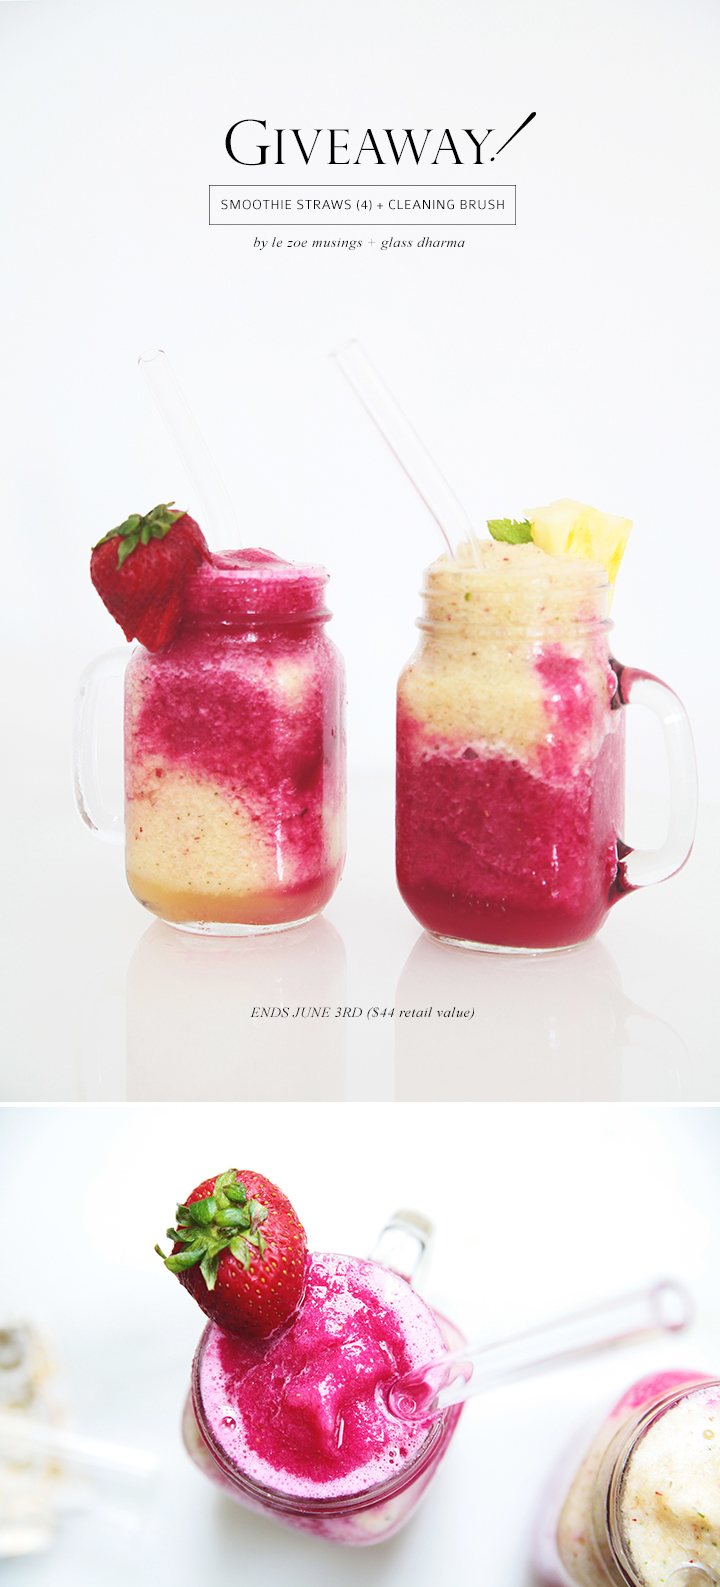 Summer Slushies by Le Zoe Musings 4